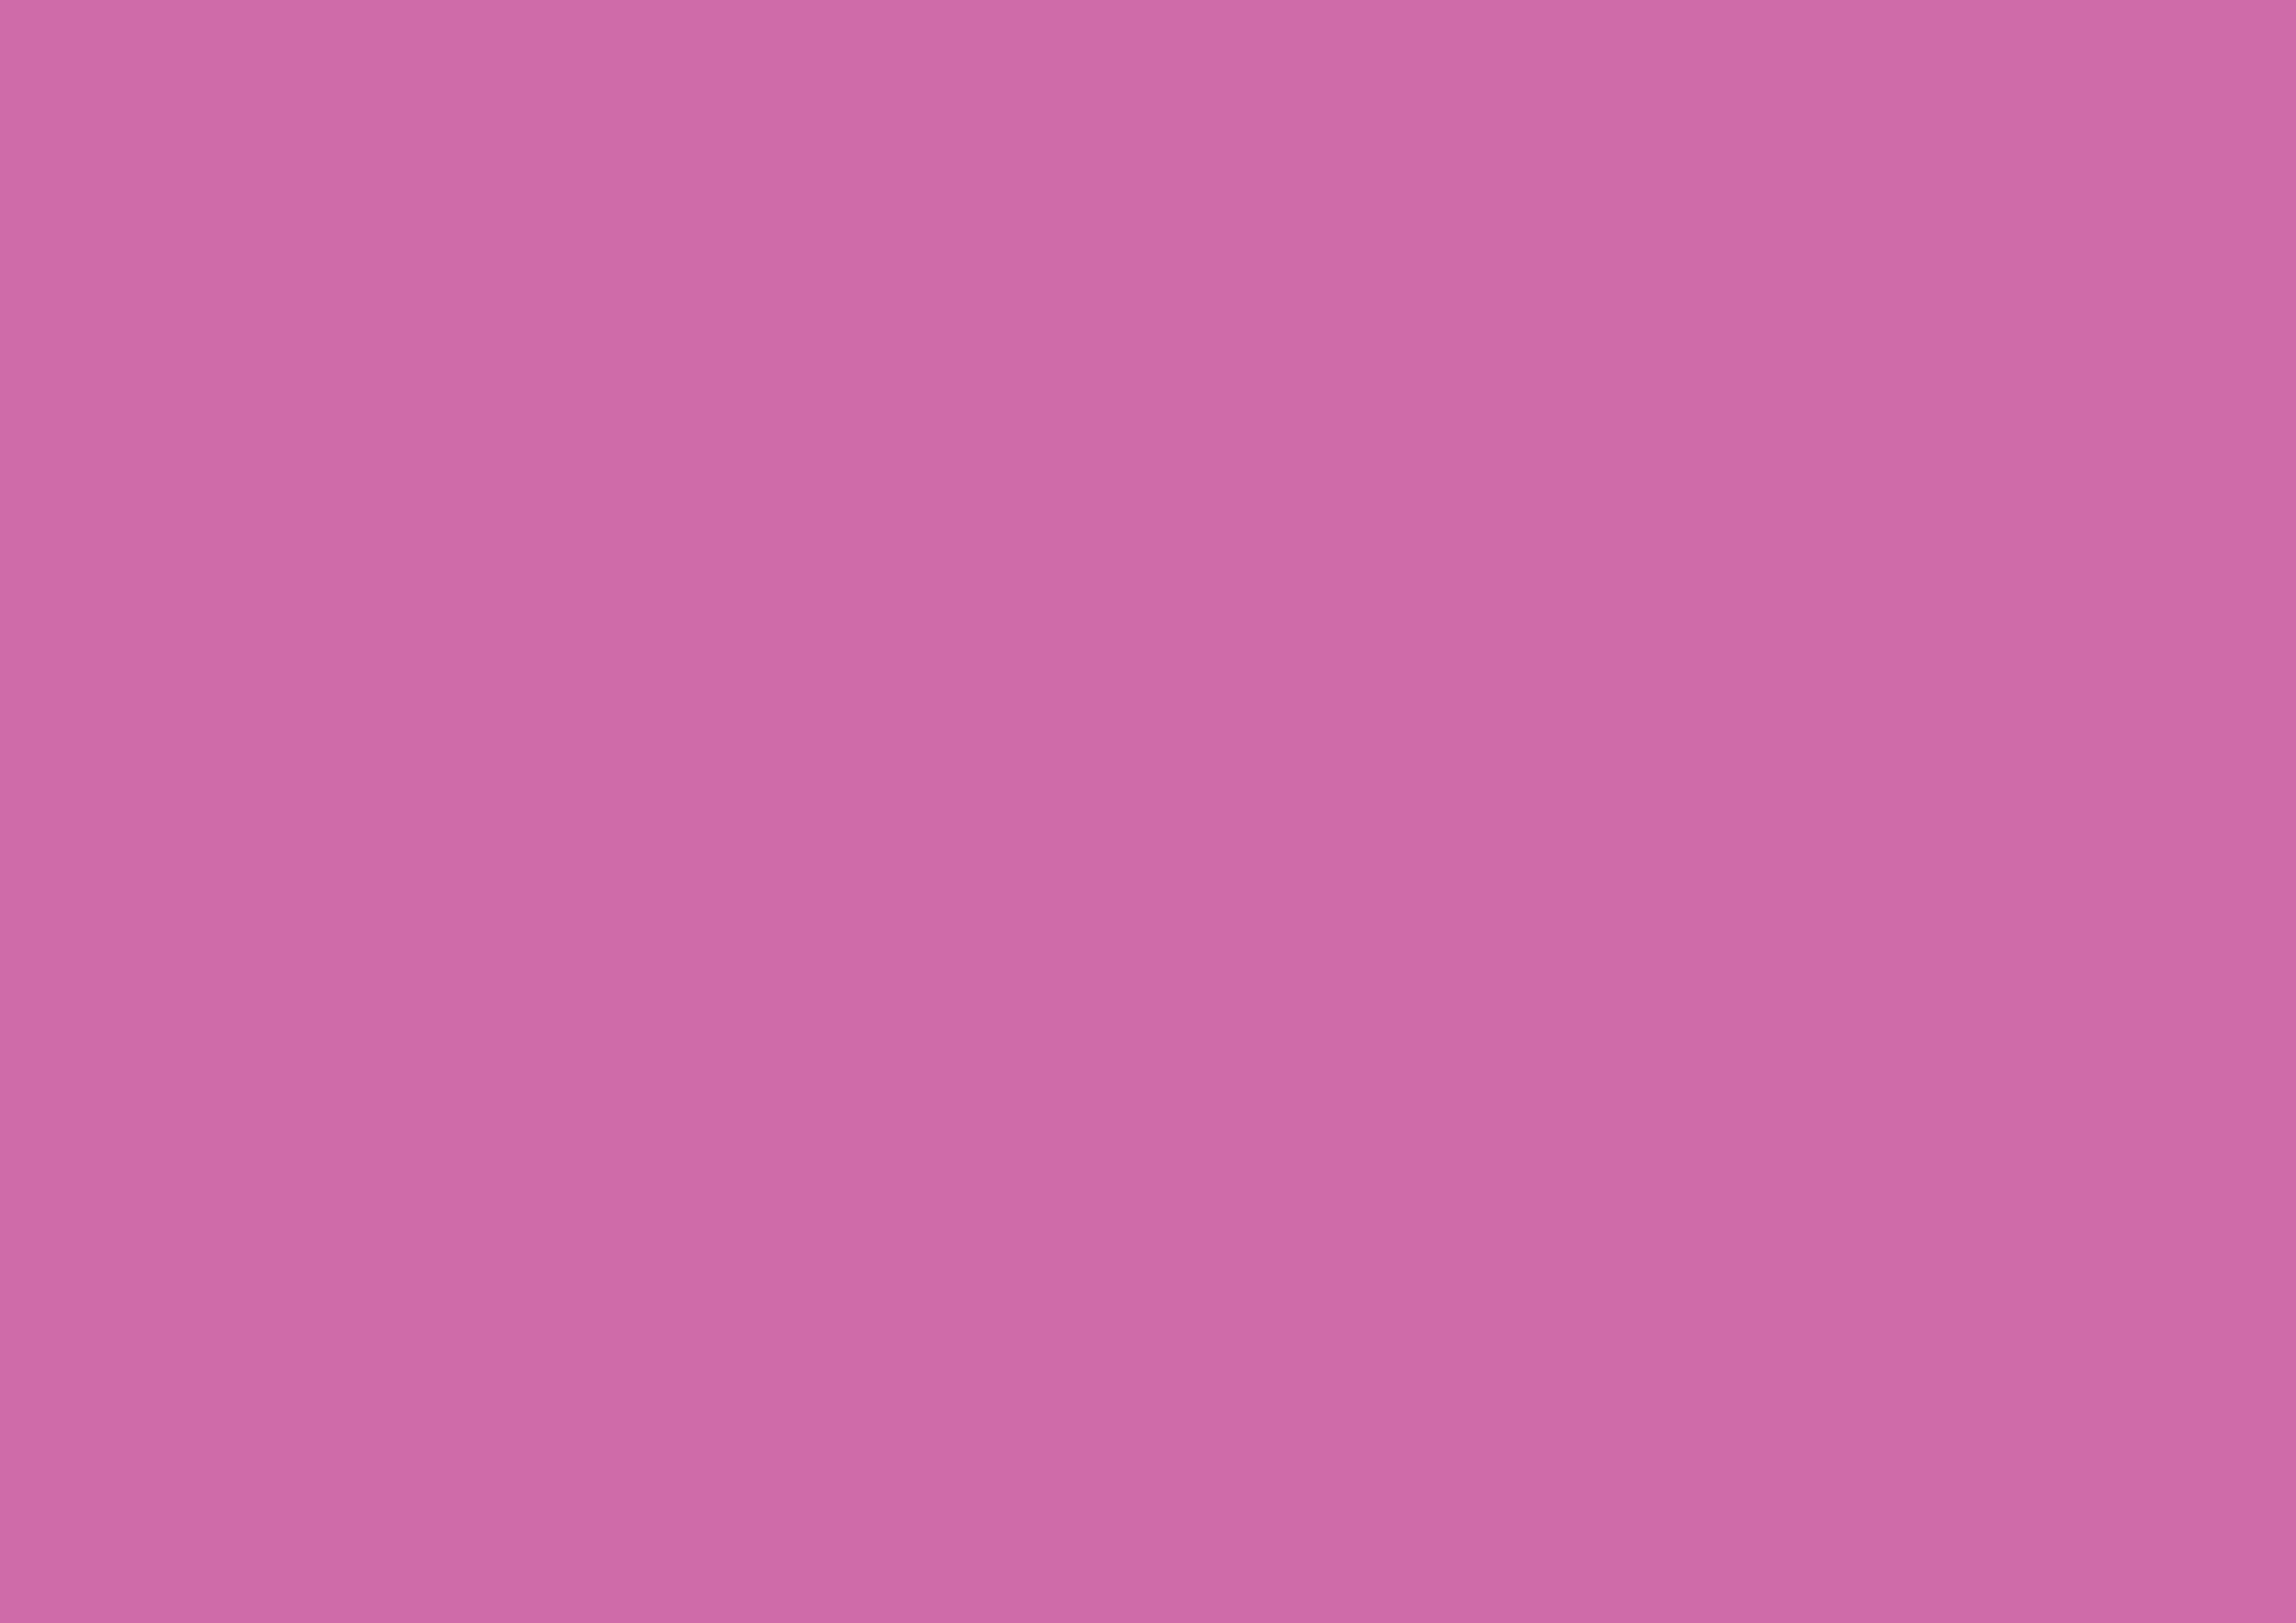 3508x2480 Super Pink Solid Color Background